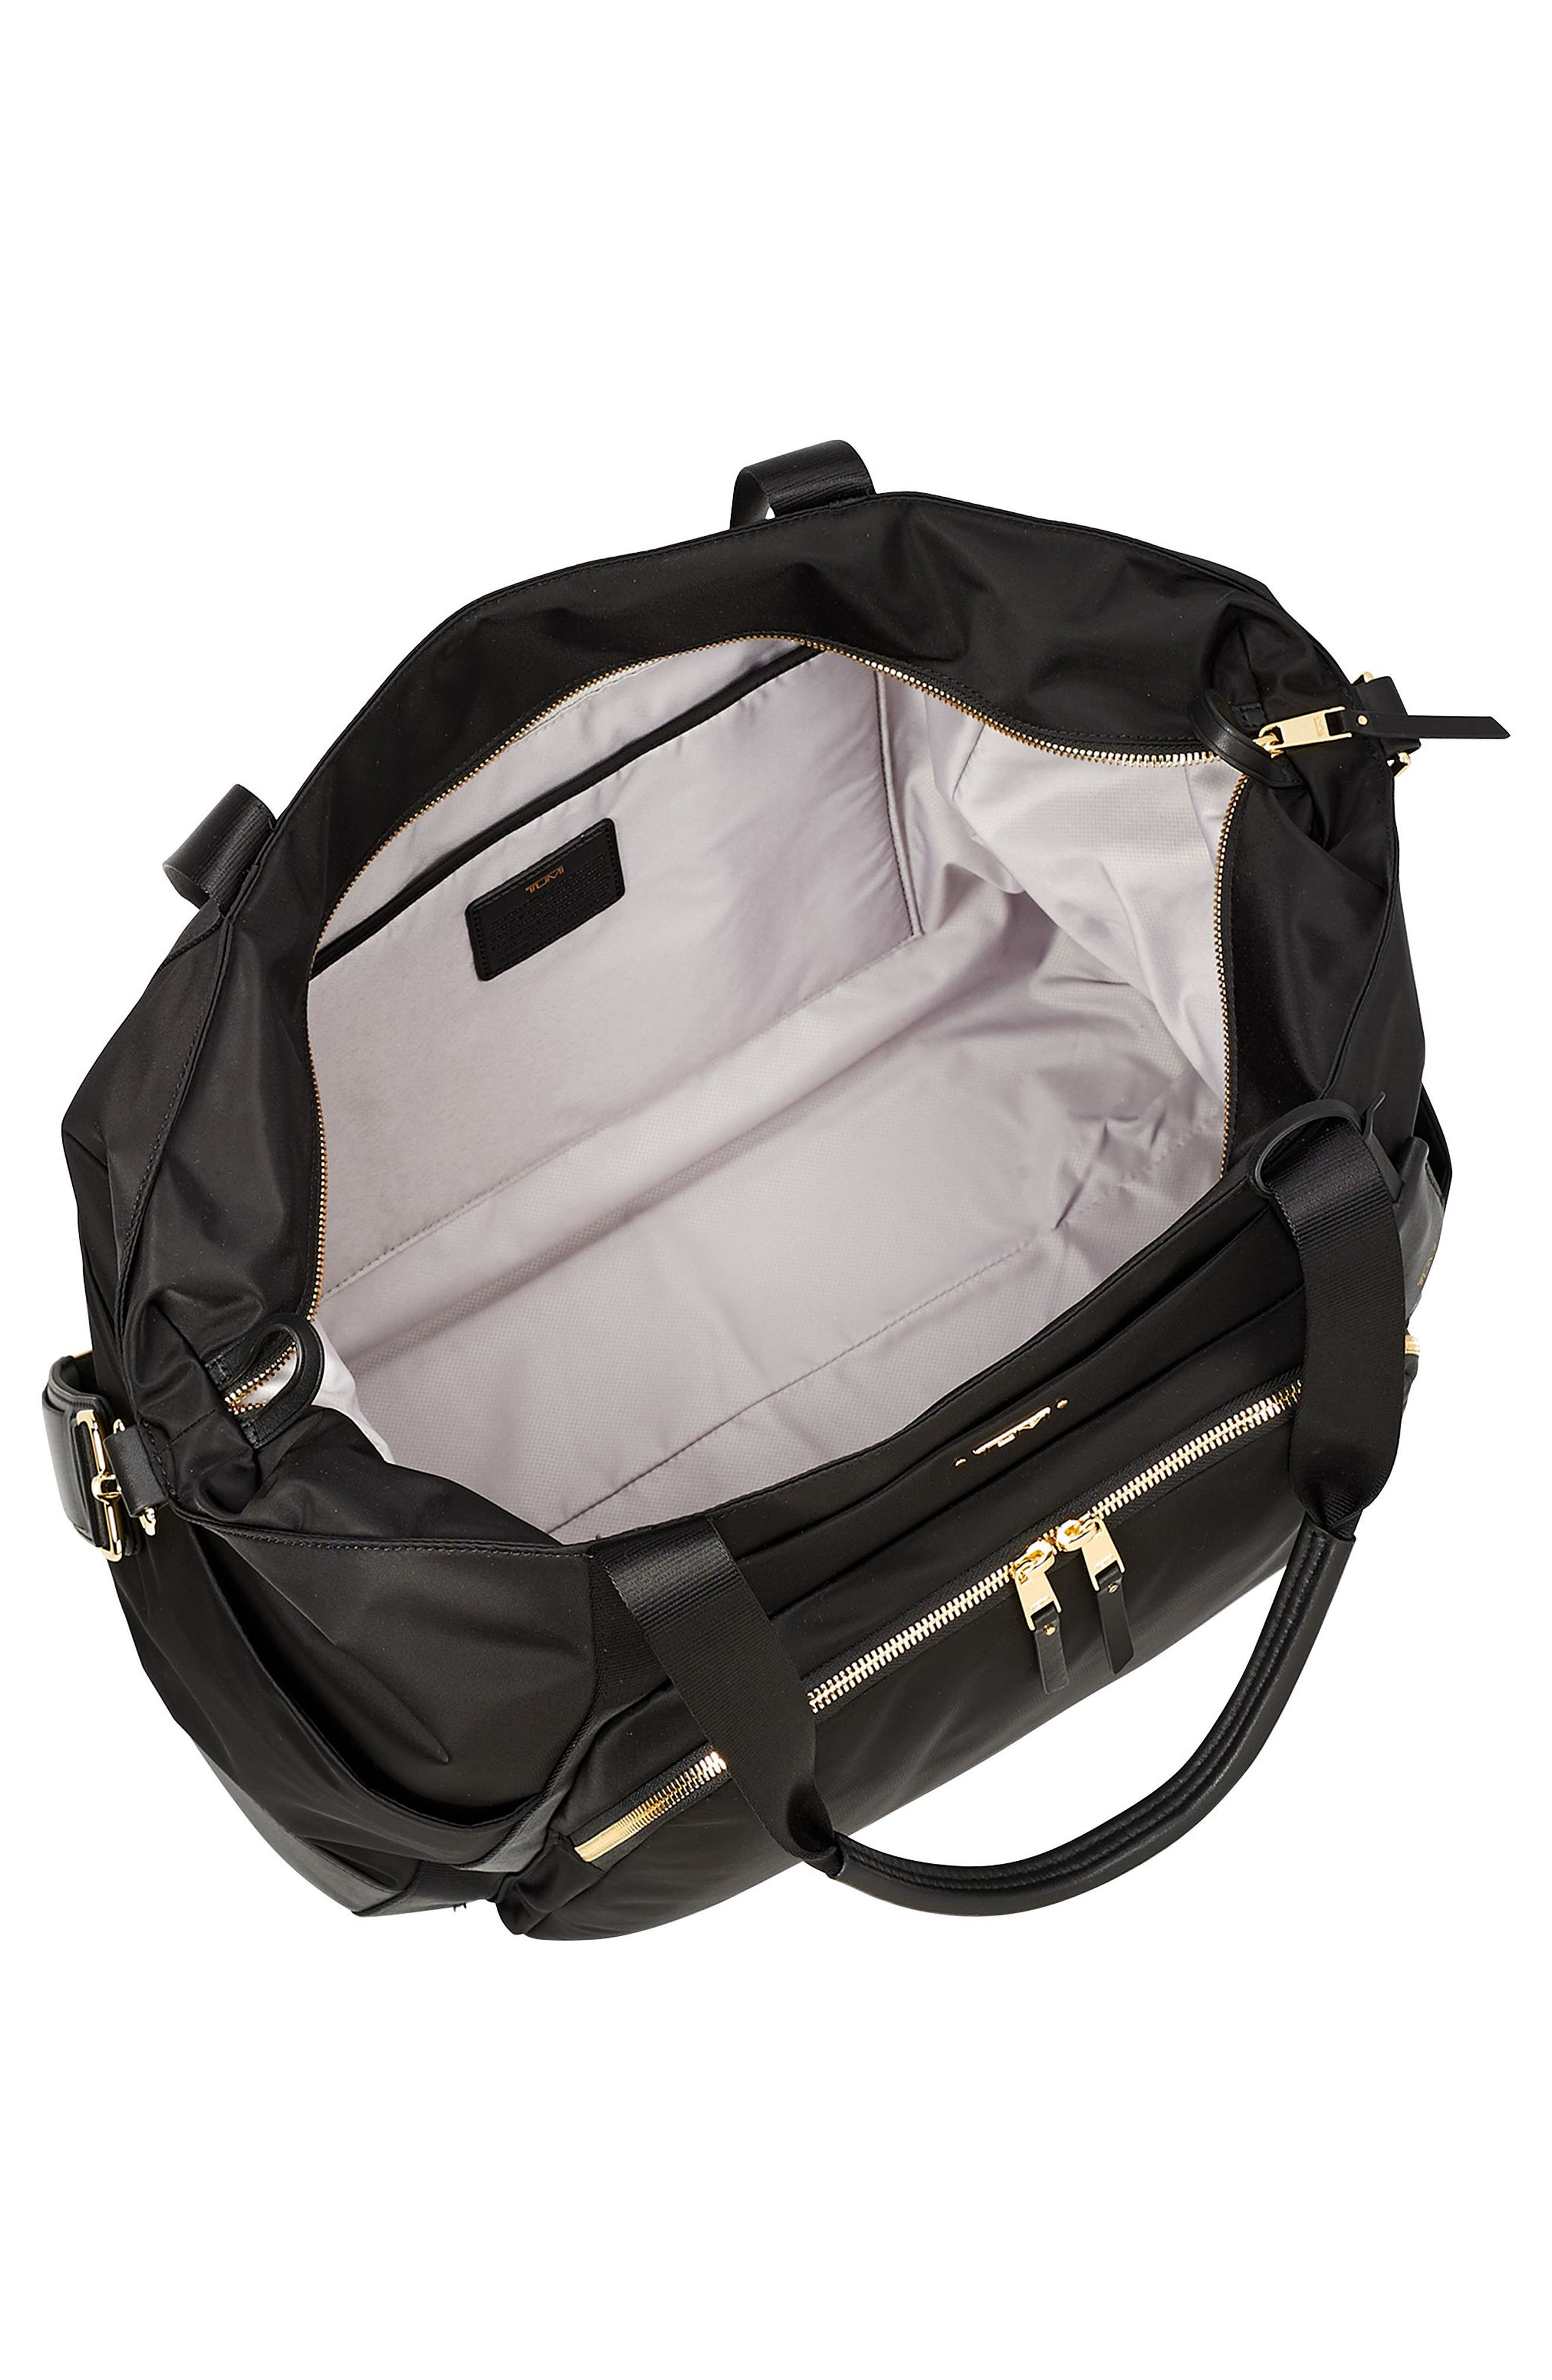 Voyaguer - Madrid Nylon Duffel Bag,                             Alternate thumbnail 3, color,                             BLACK